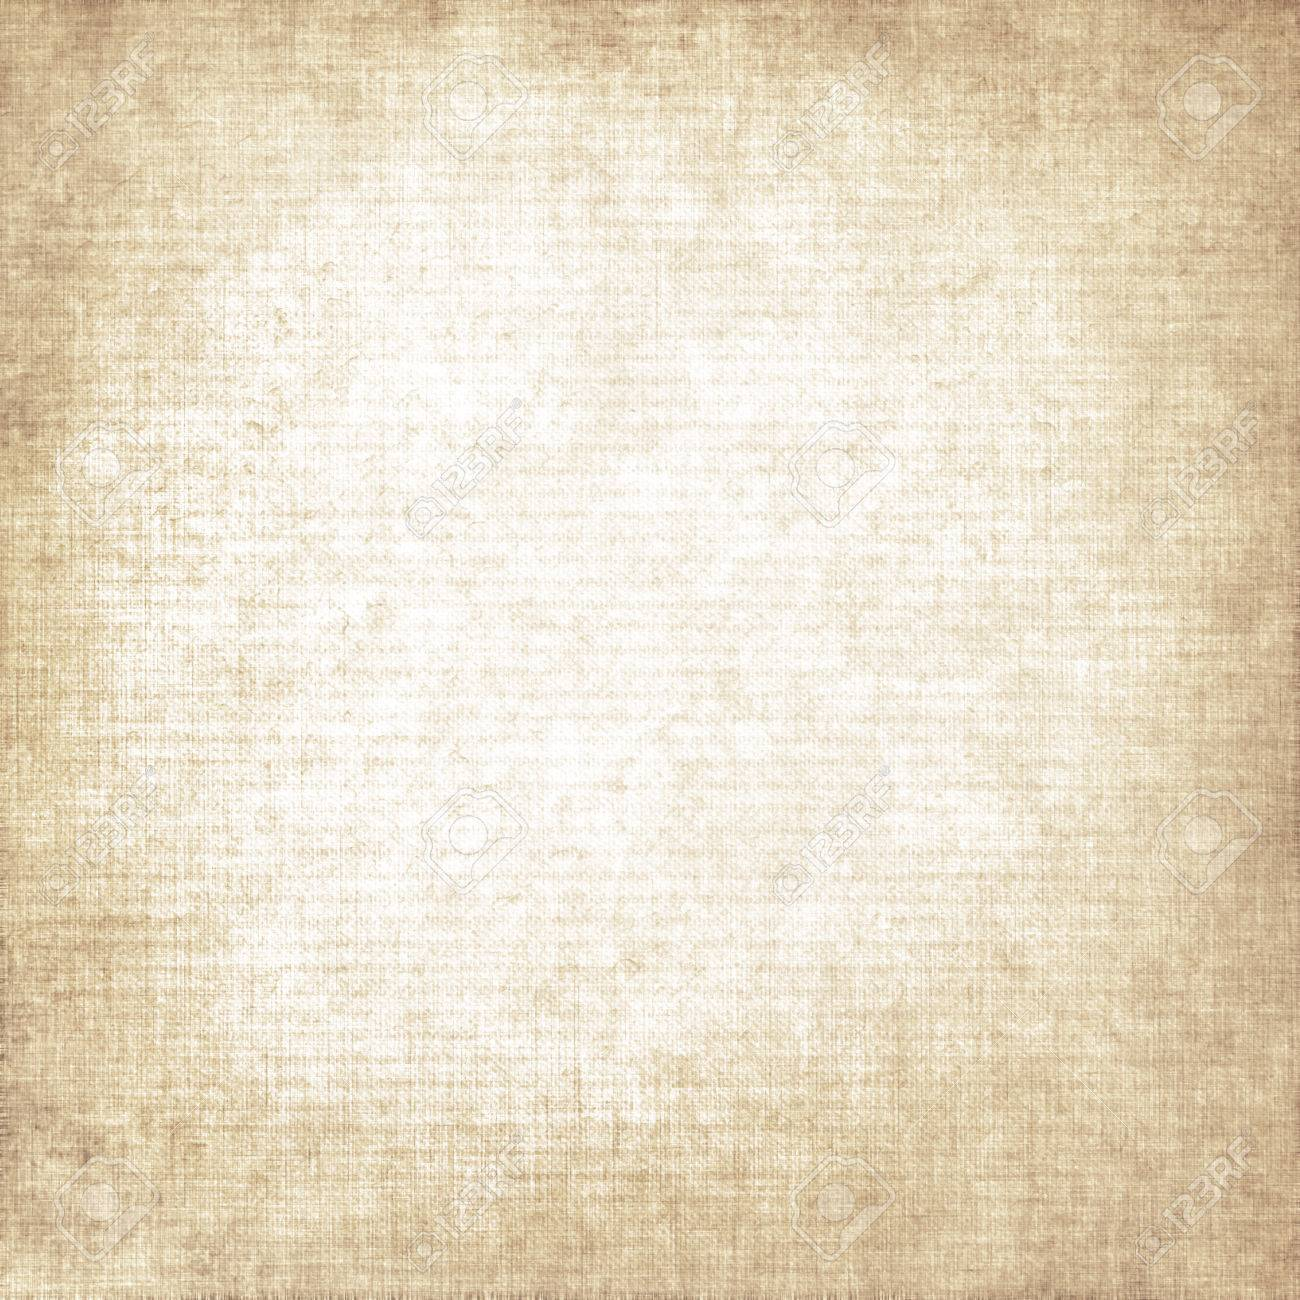 old paper background canvas texture knit pattern scrap book stock